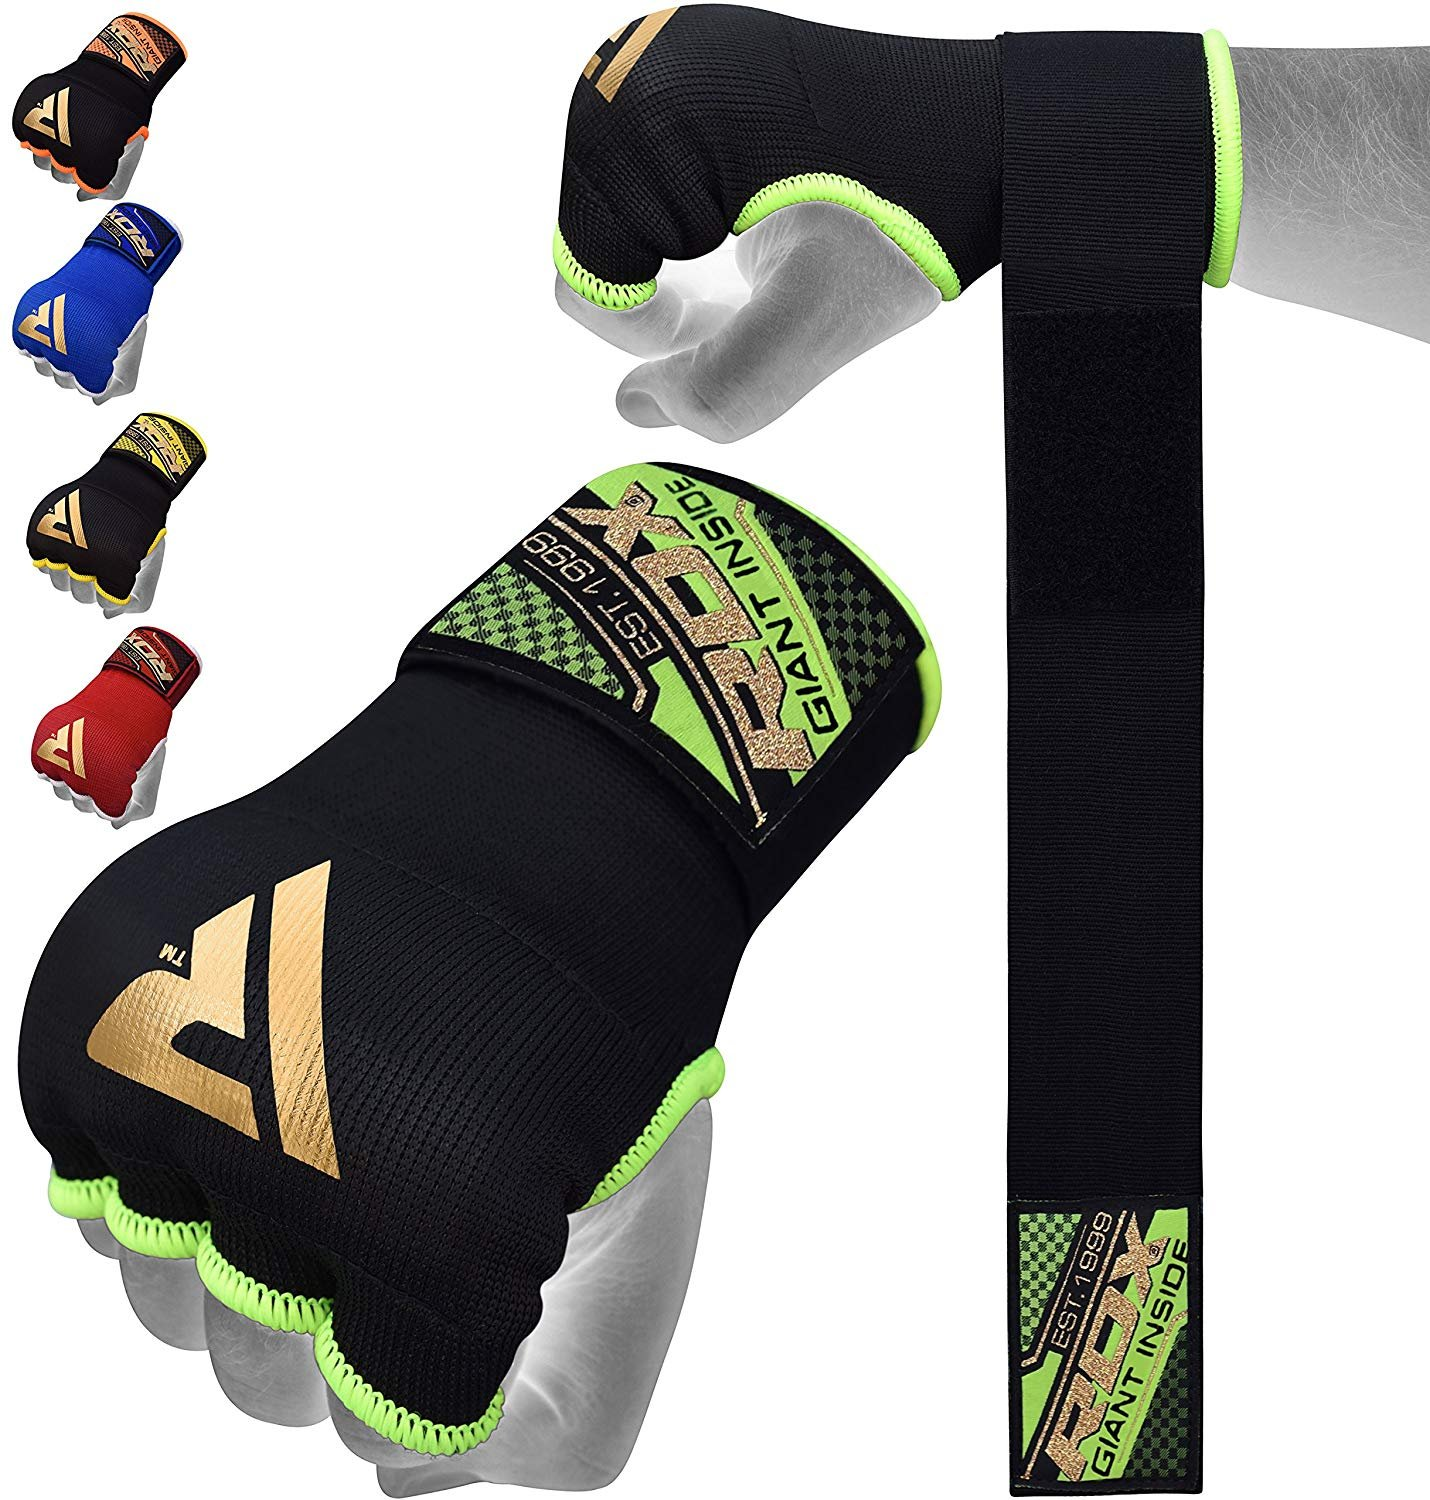 RDX Training Boxing Inner Gloves Hand Wraps